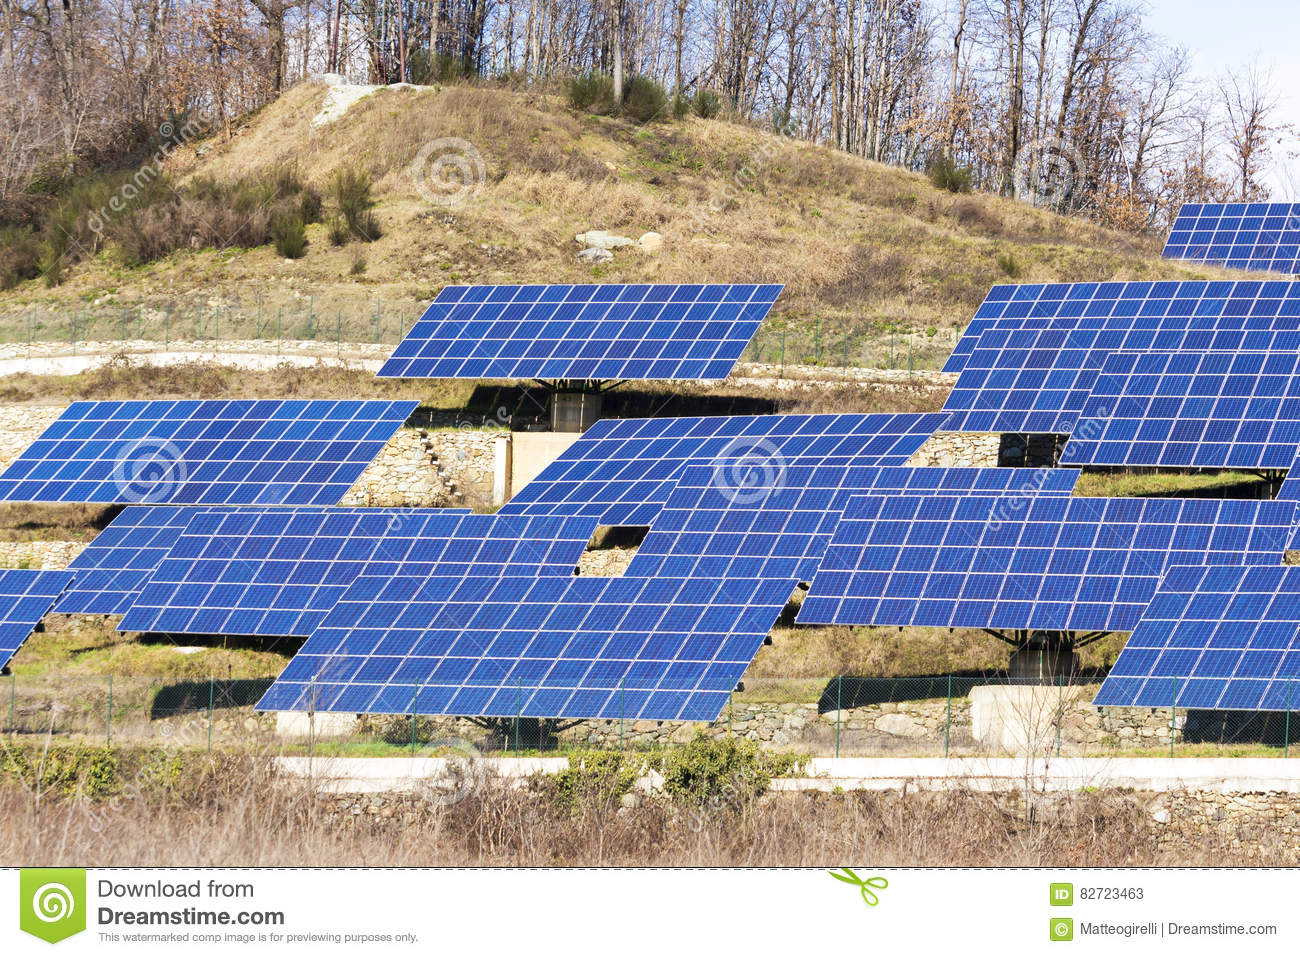 producing and selling solar panels in B2-3-04: special property eligibility considerations properties with solar panels have a production guarantee that compensates the.